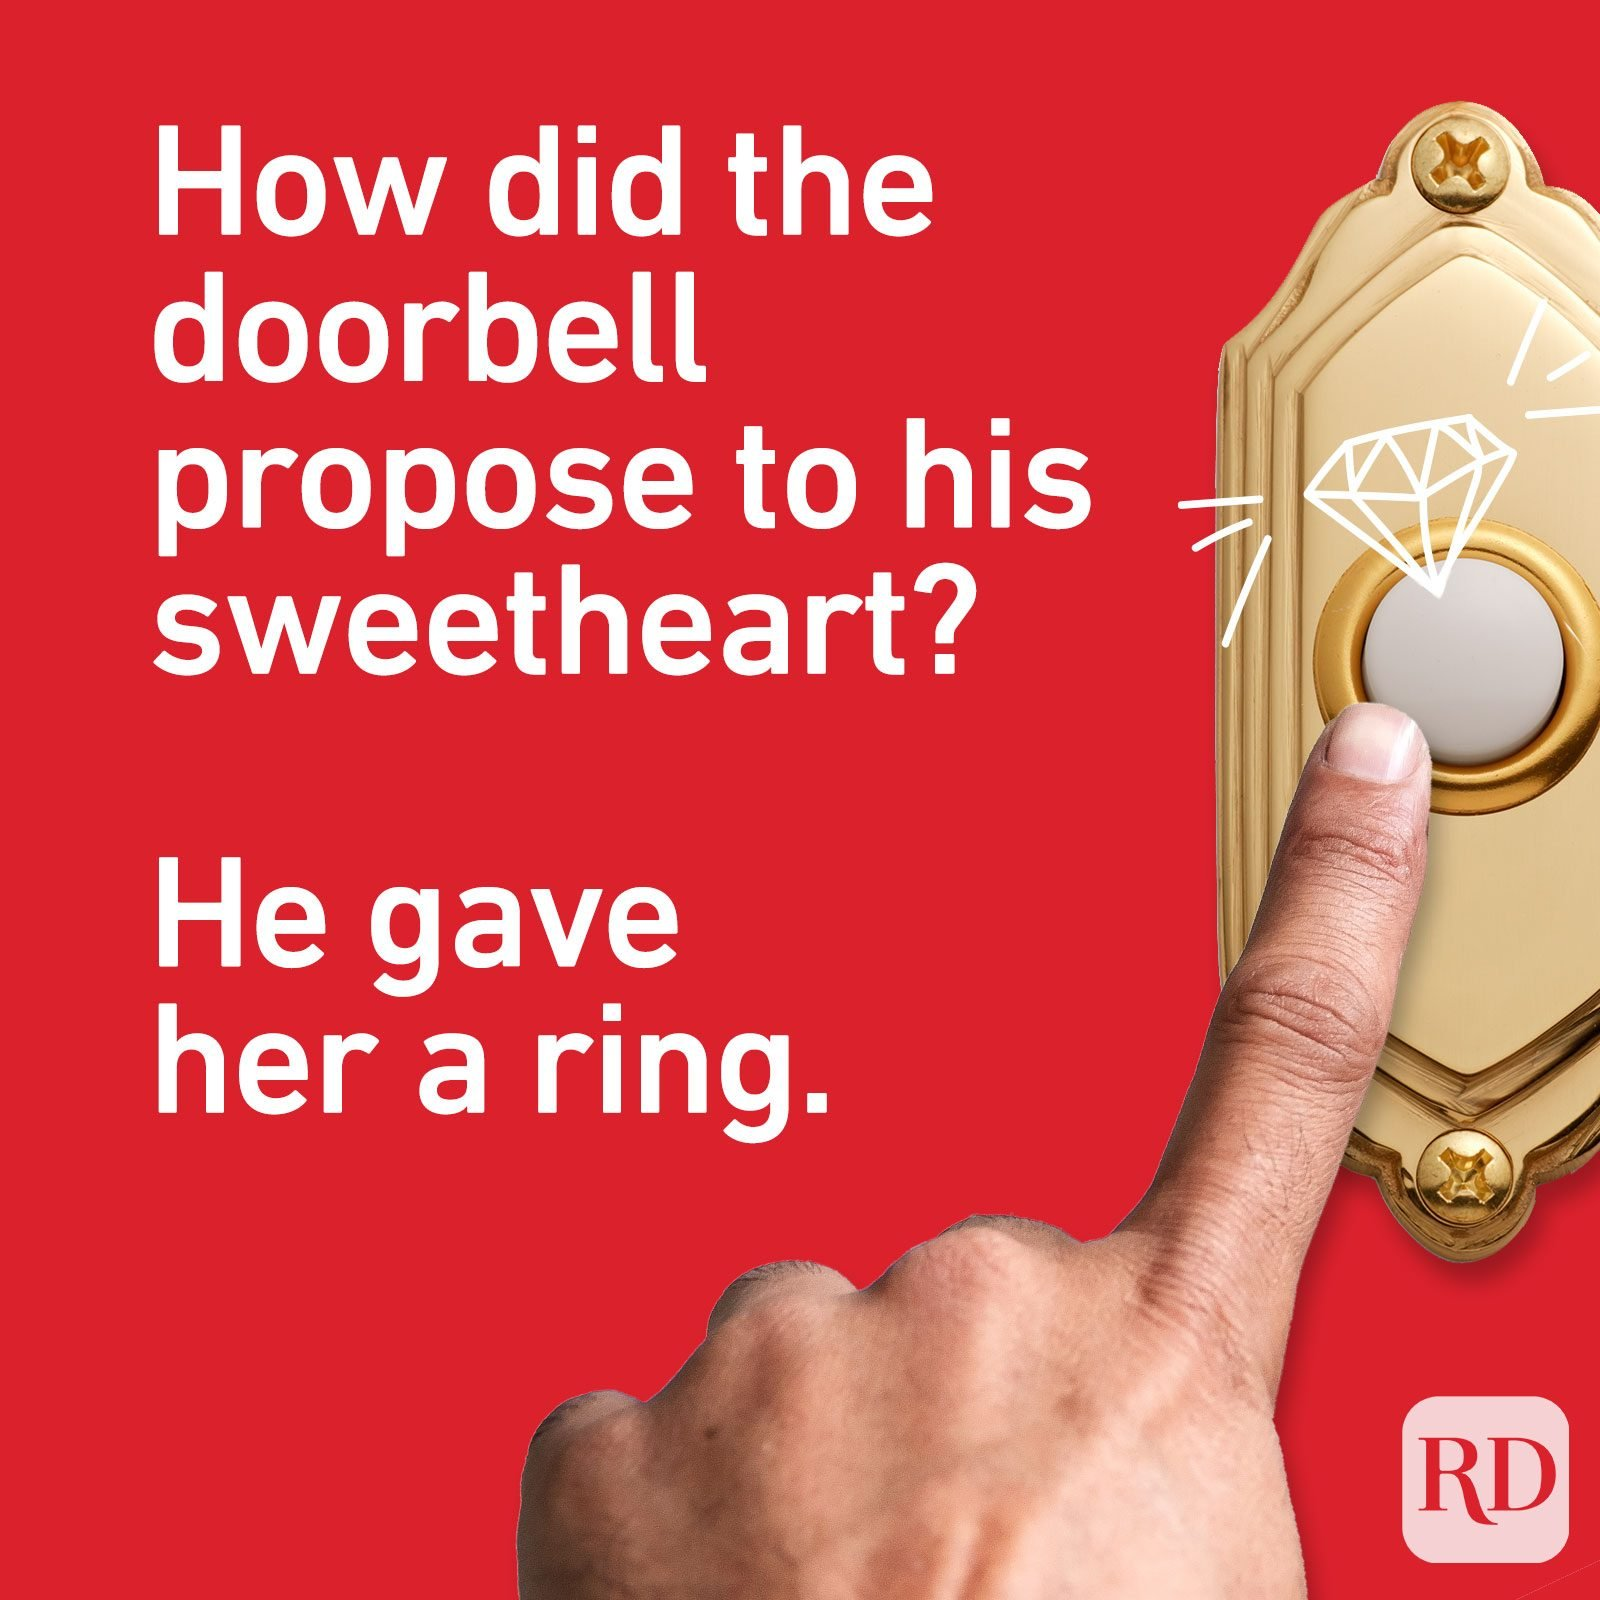 How did the doorbell propose to his sweetheart? He gave her a ring.